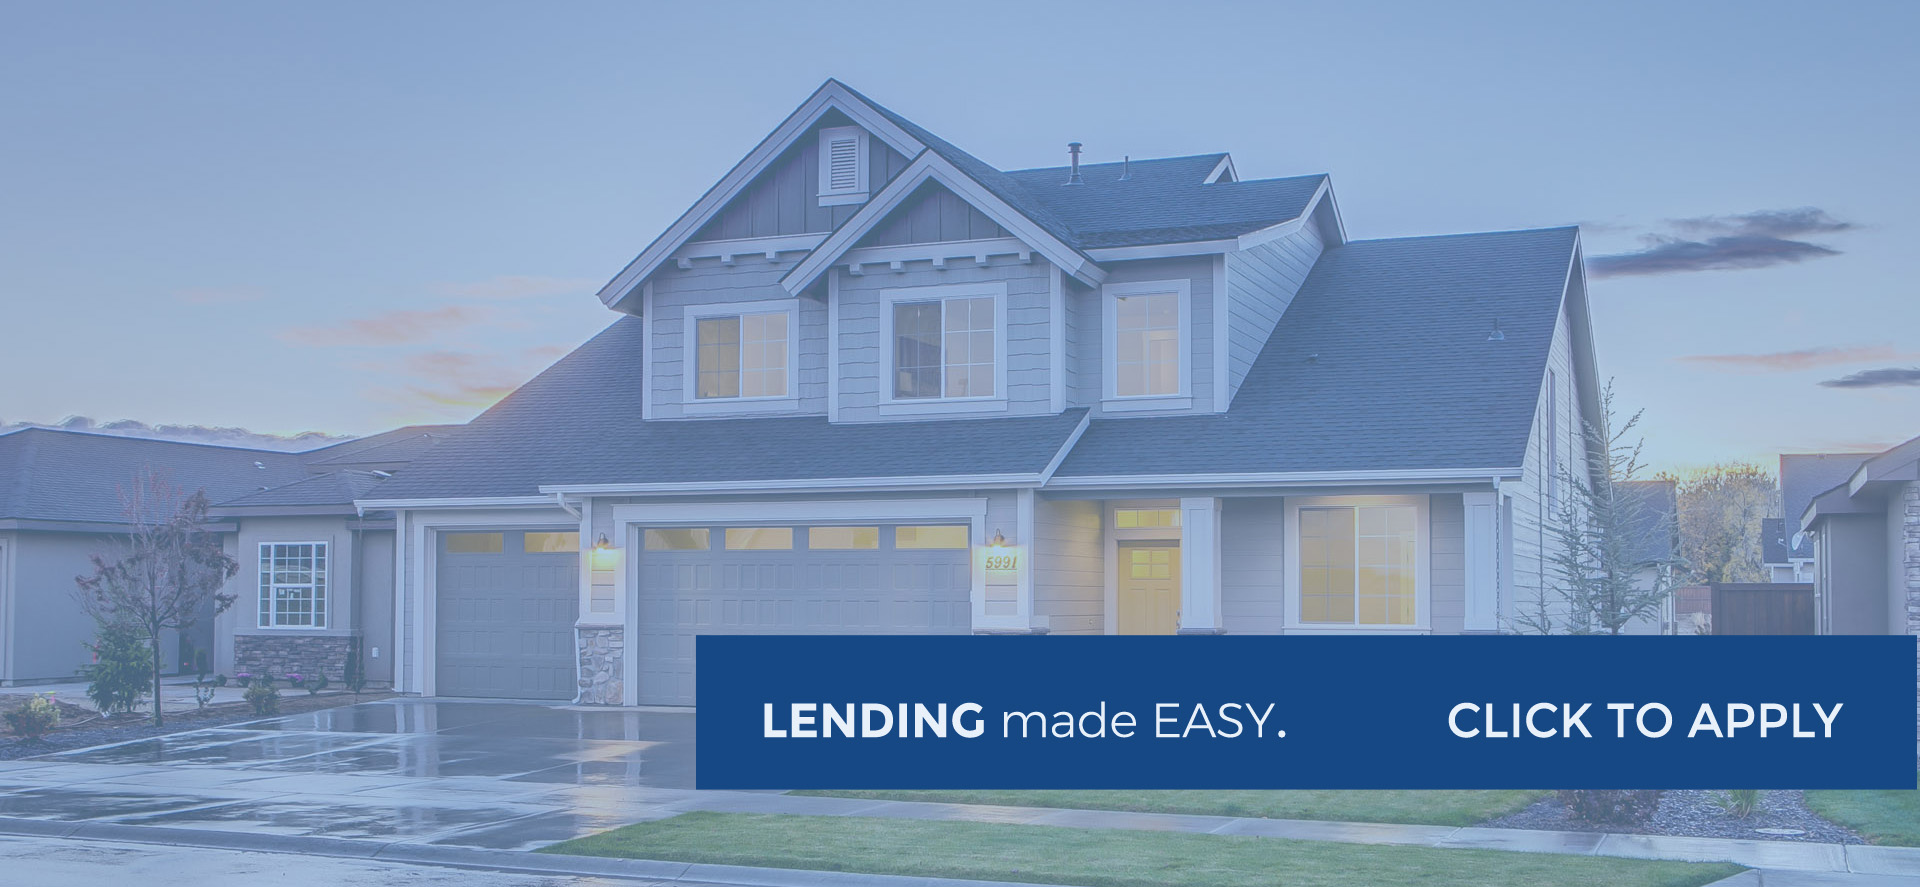 Apply For A Home Loan By Clicking Image